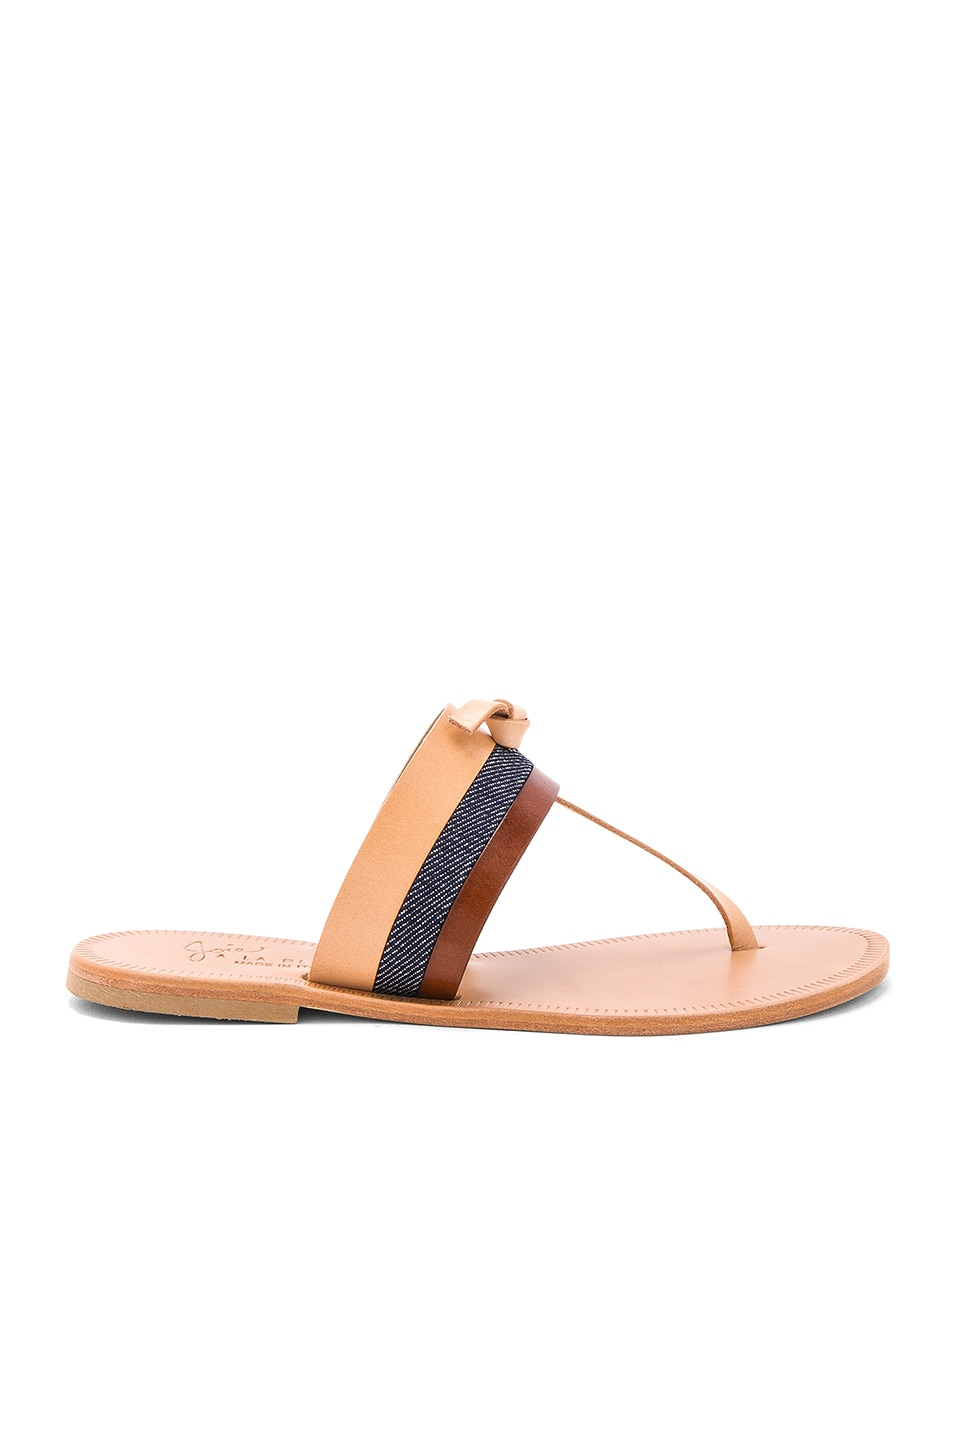 Naima Sandal by Joie